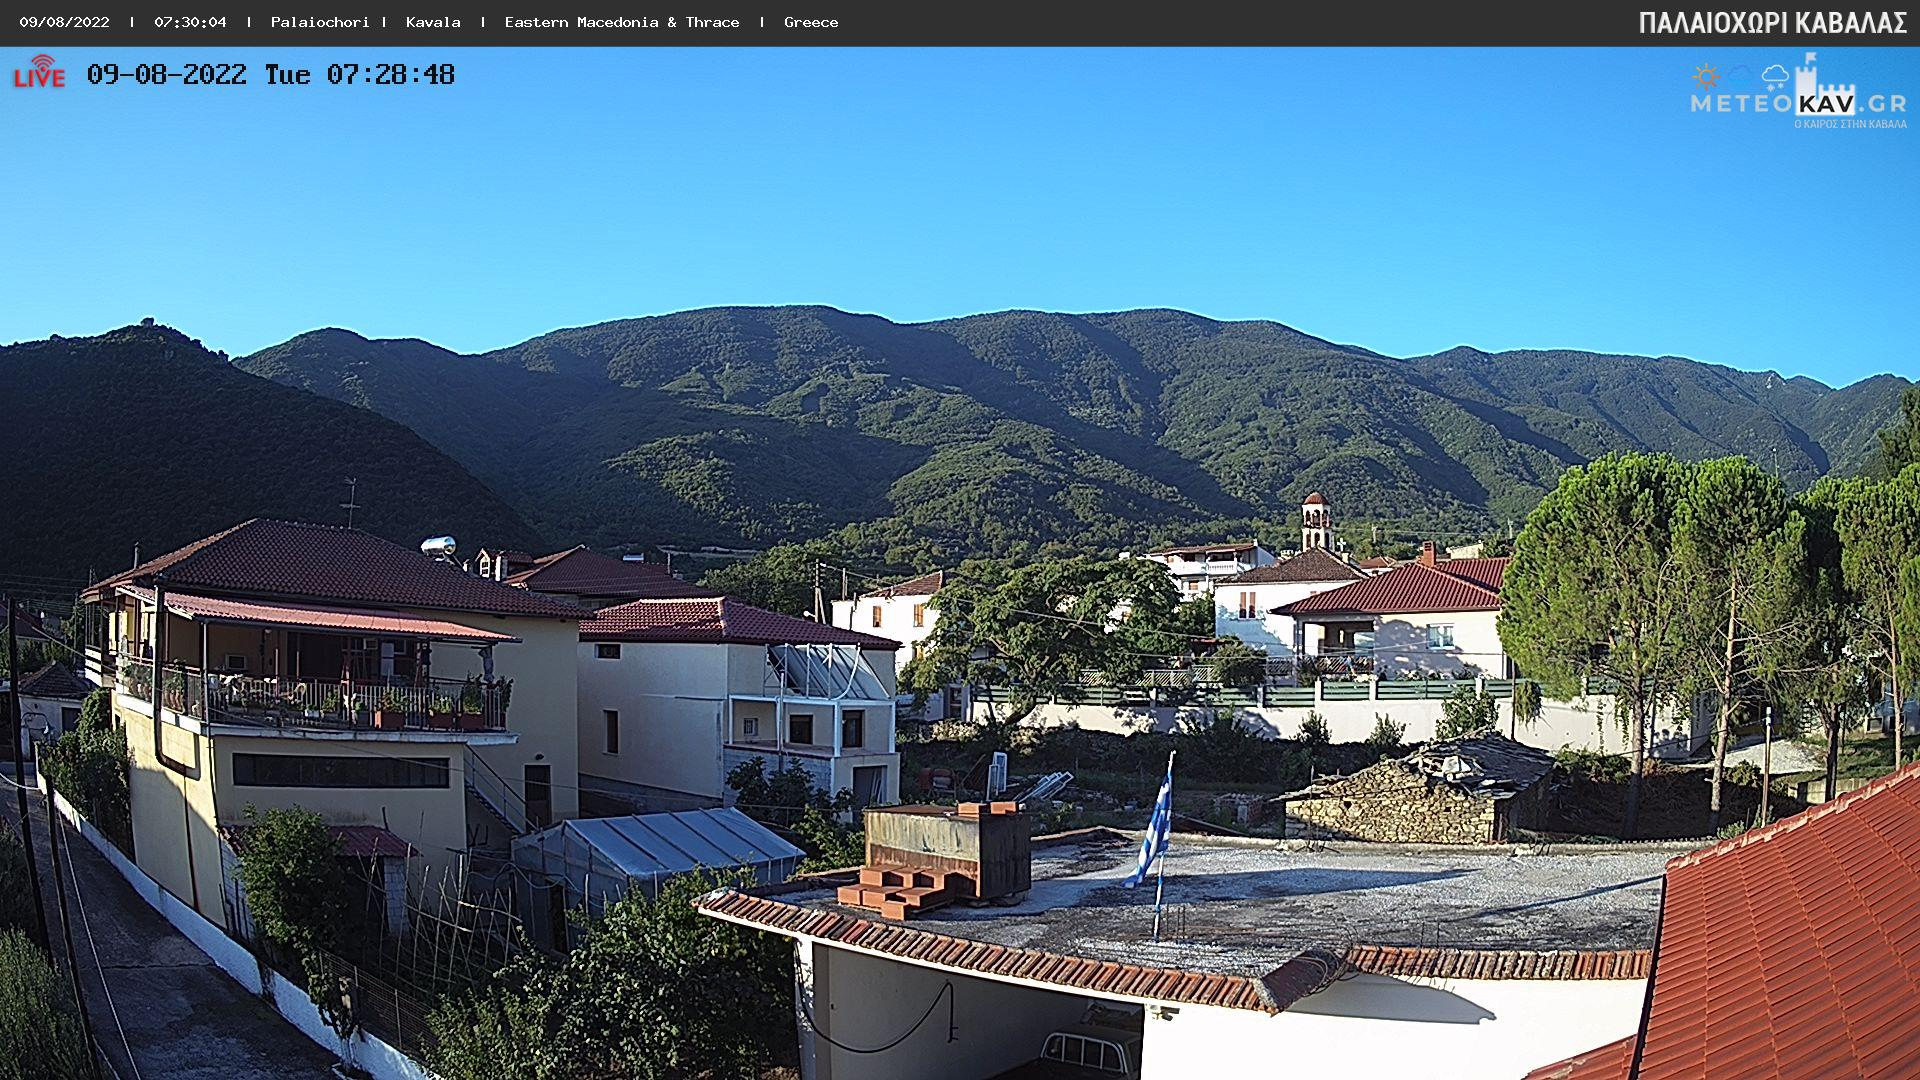 Webcam Palaiochori 2 - Kavala